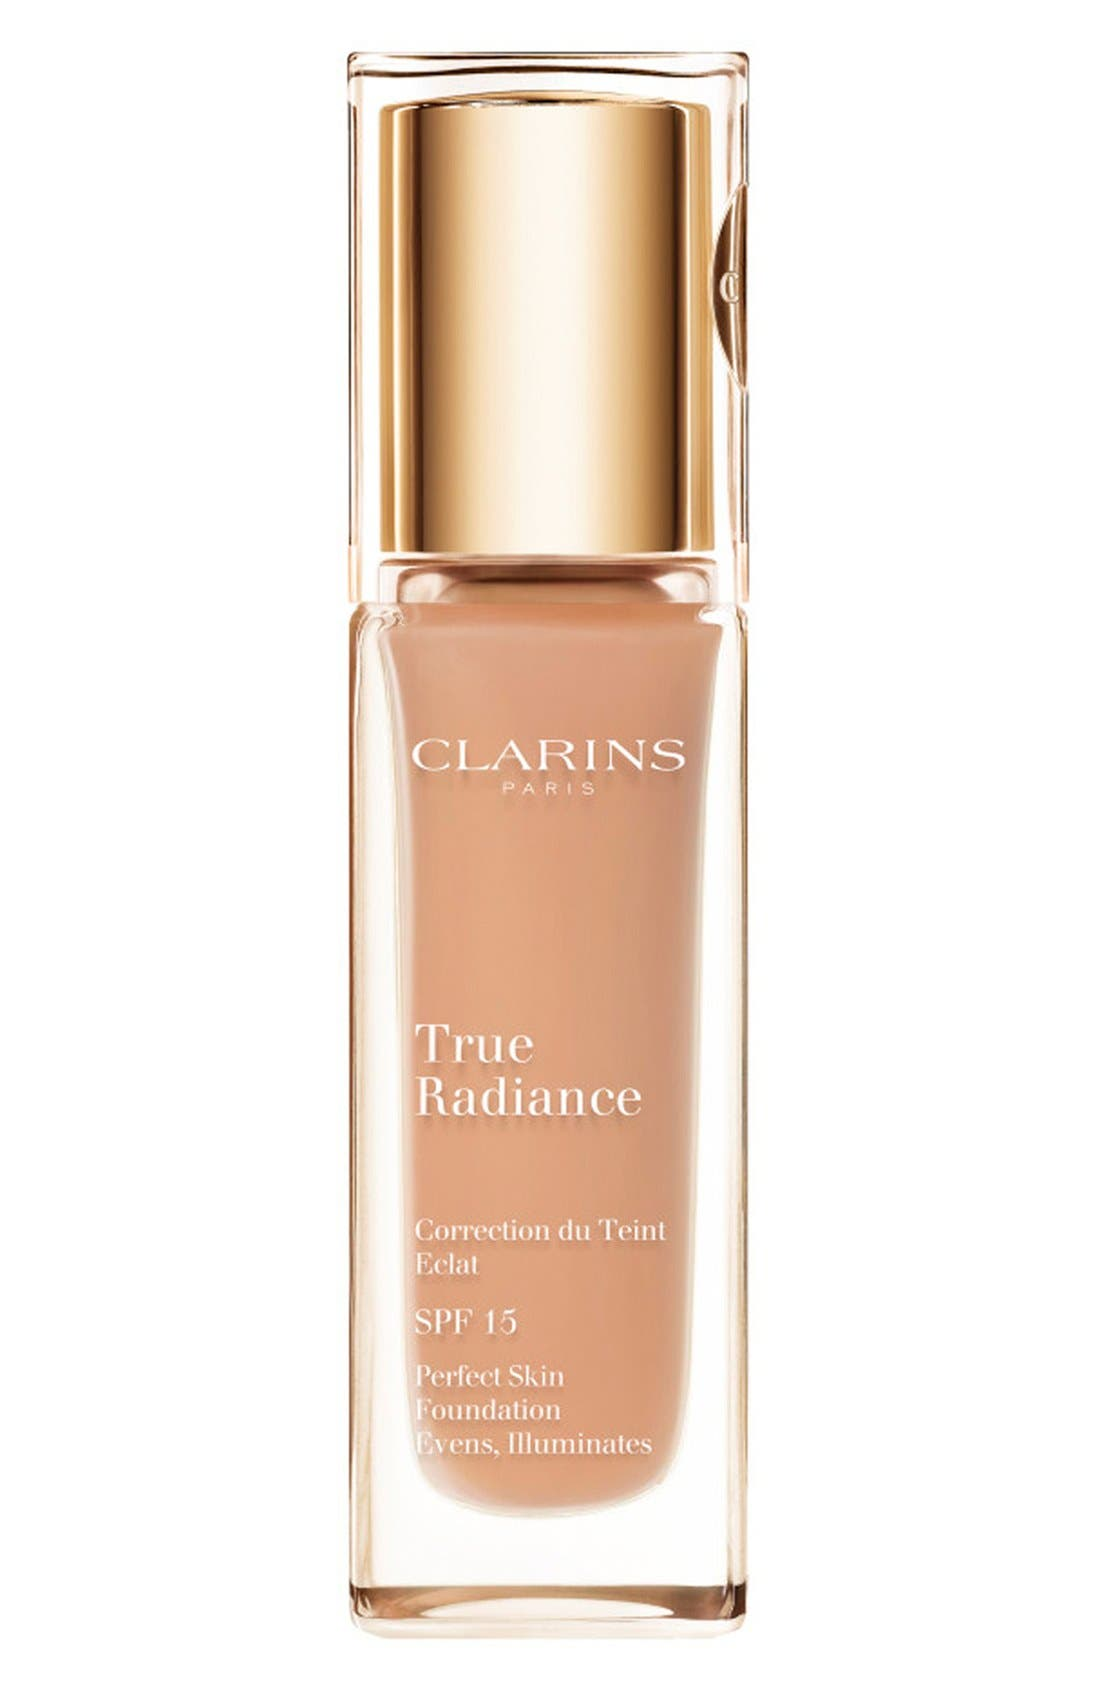 Clarins 'True Radiance' SPF 15 Perfect Skin Foundation